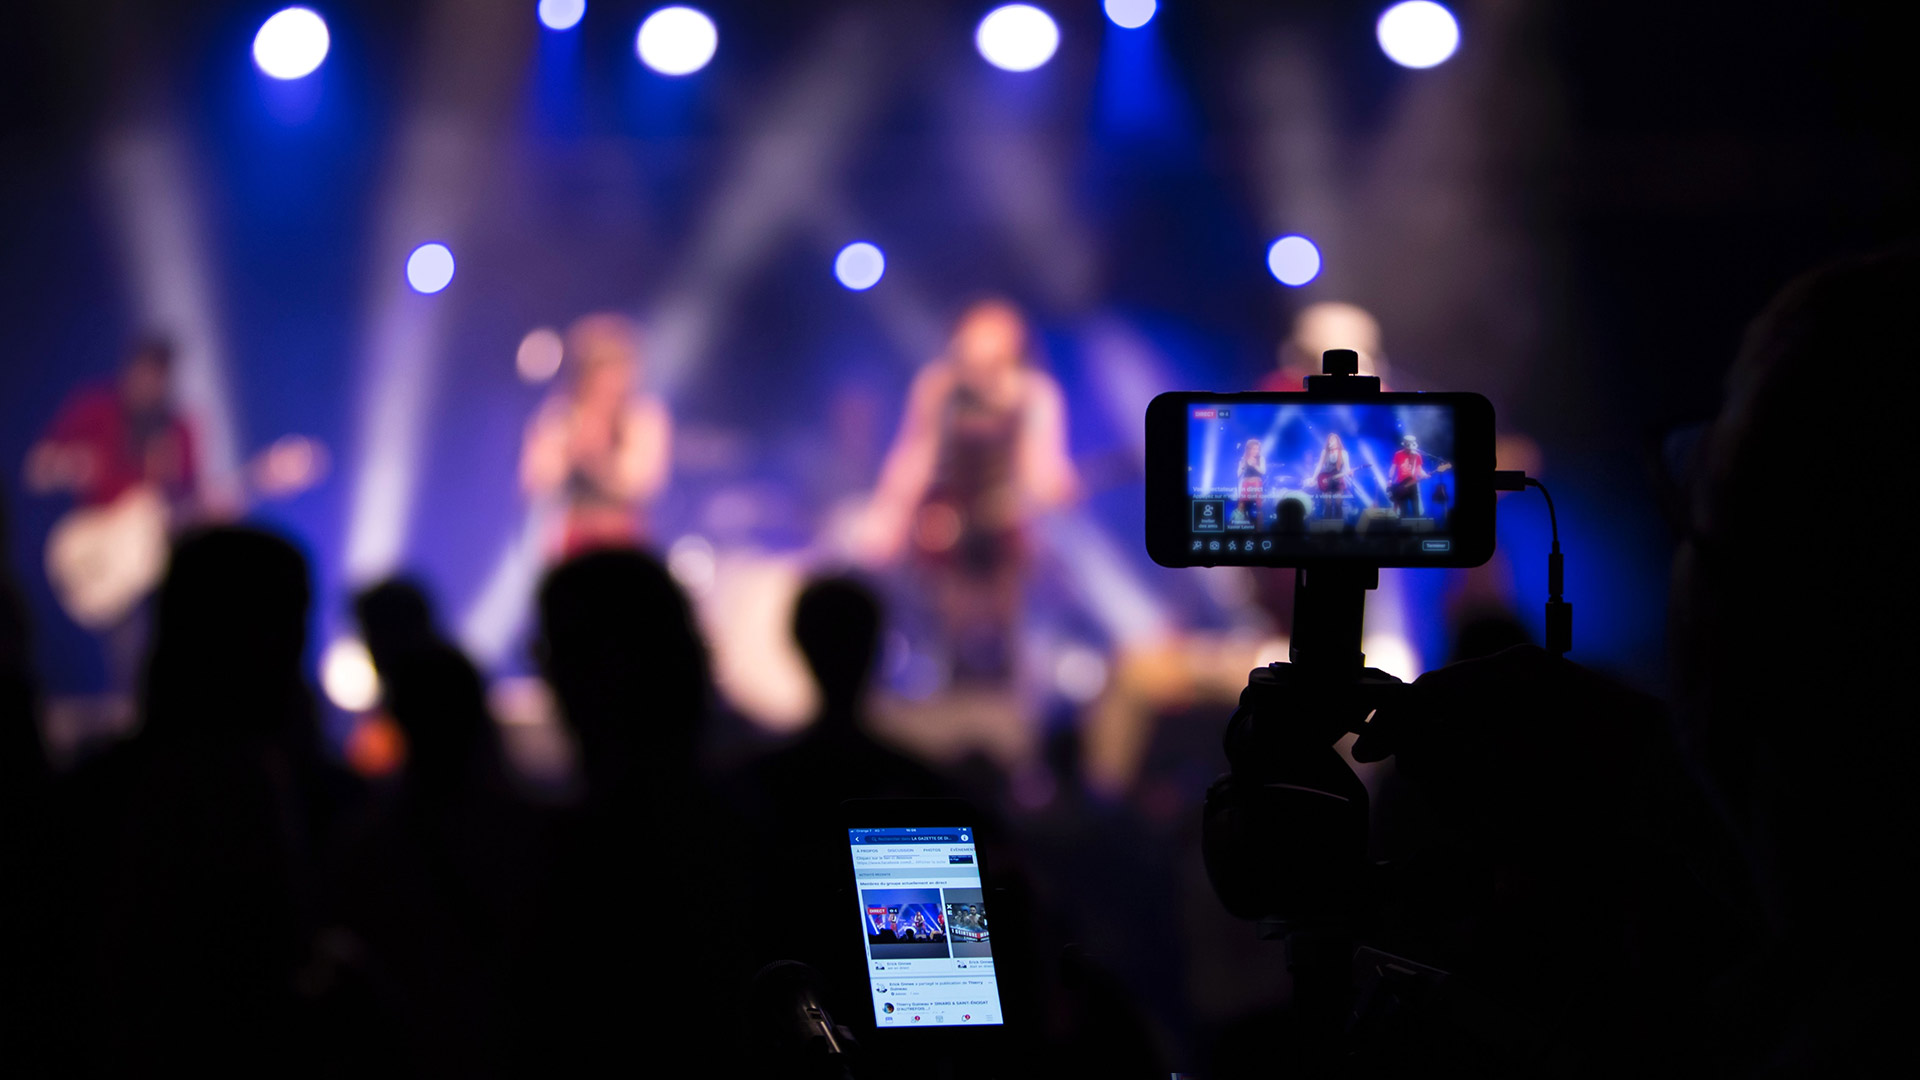 3 Simple Ways Your Church Can Start Live Streaming